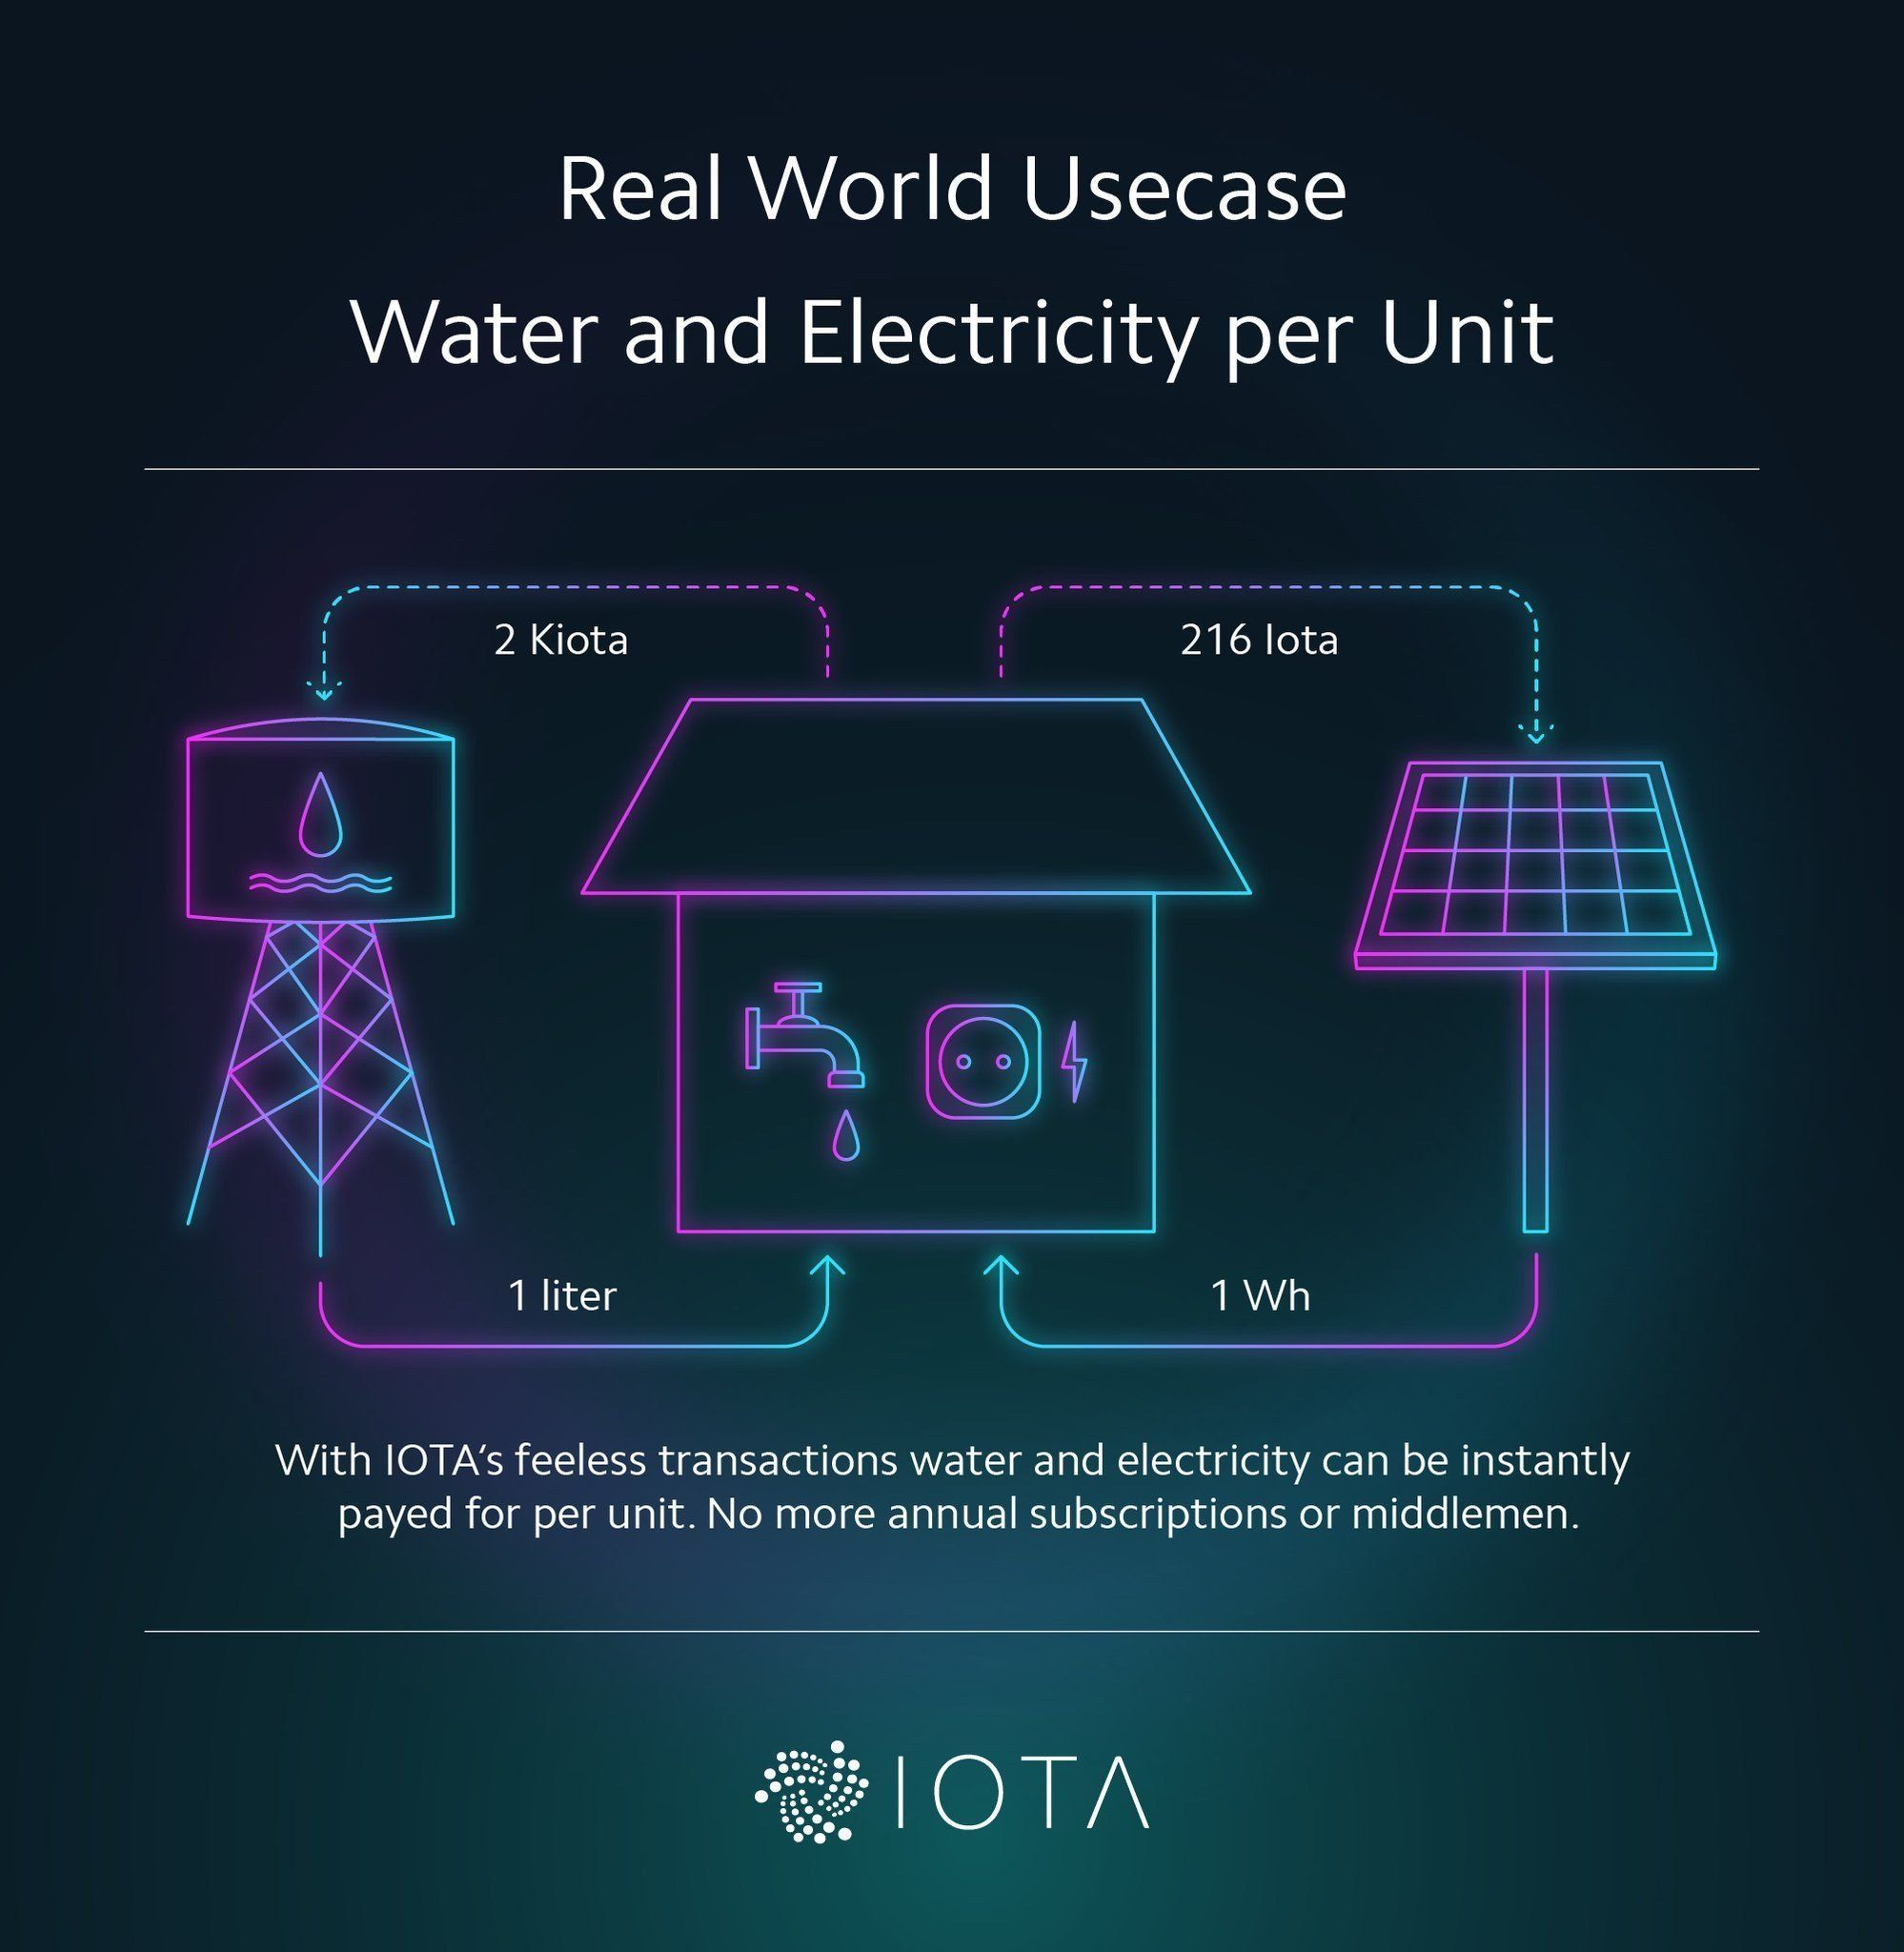 IOTA Real World Usecase - Water and Electricity per Unit: With IOTA